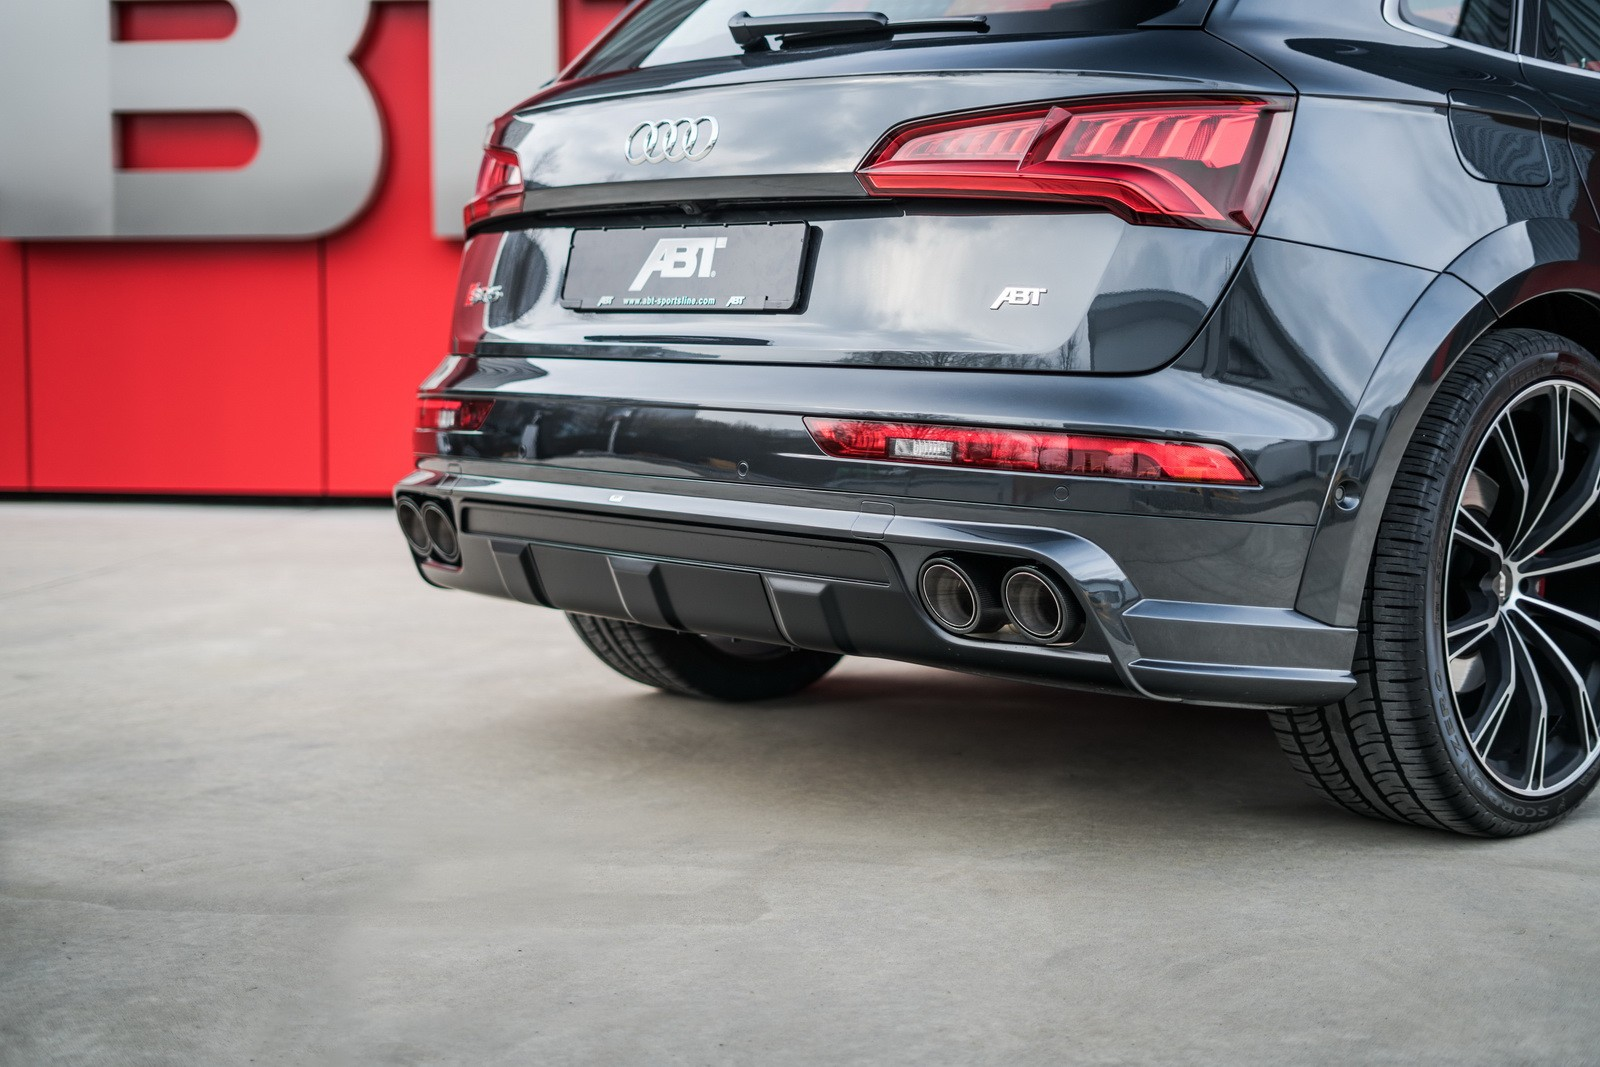 audi sq5 tuning by abt includes widebody kit and 425 hp. Black Bedroom Furniture Sets. Home Design Ideas